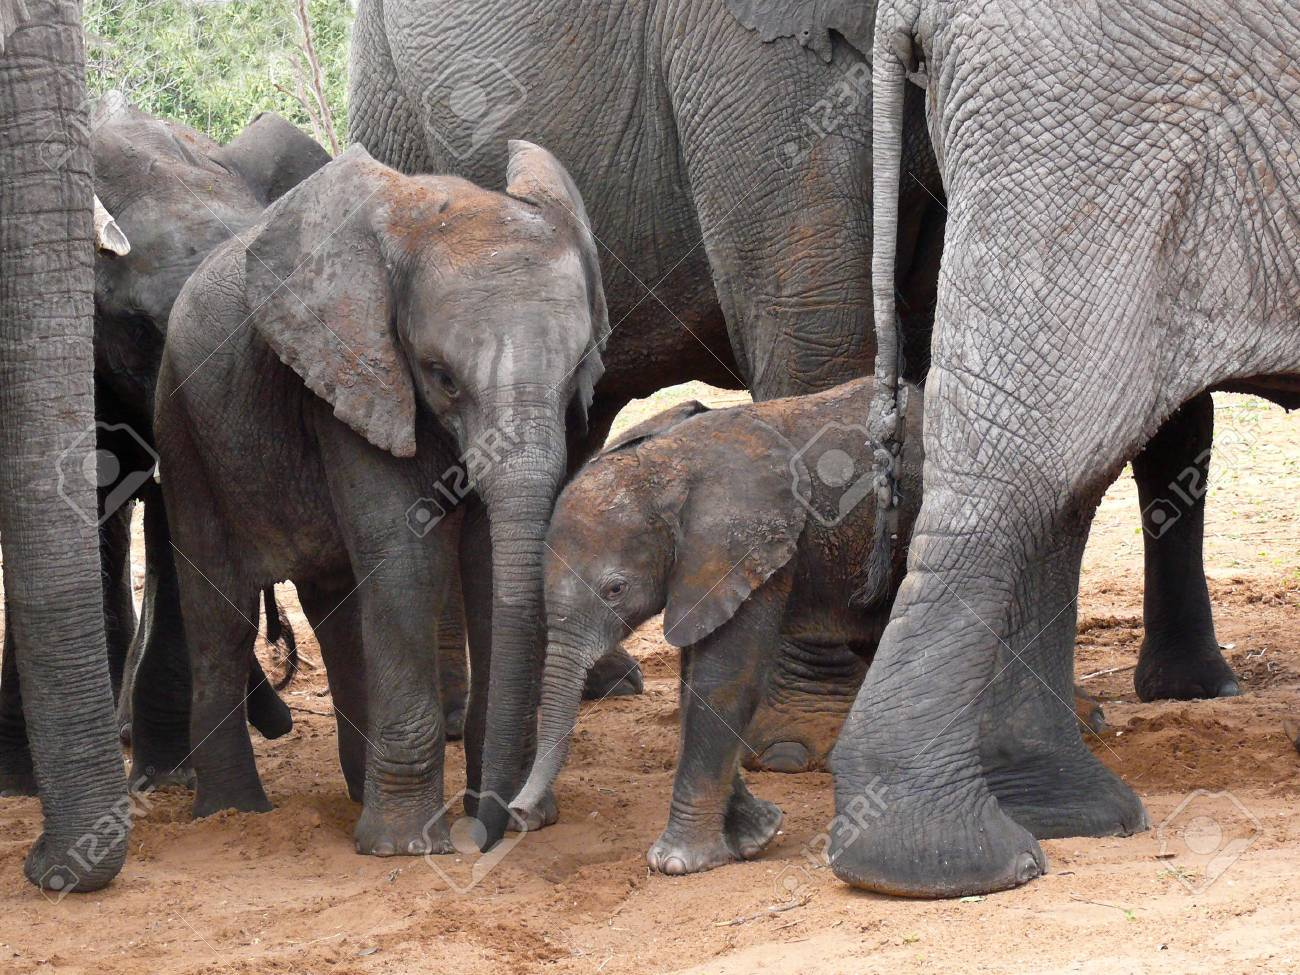 Baby Elephants protected by their herd in Botswana, Africa. Stock Photo - 10630145